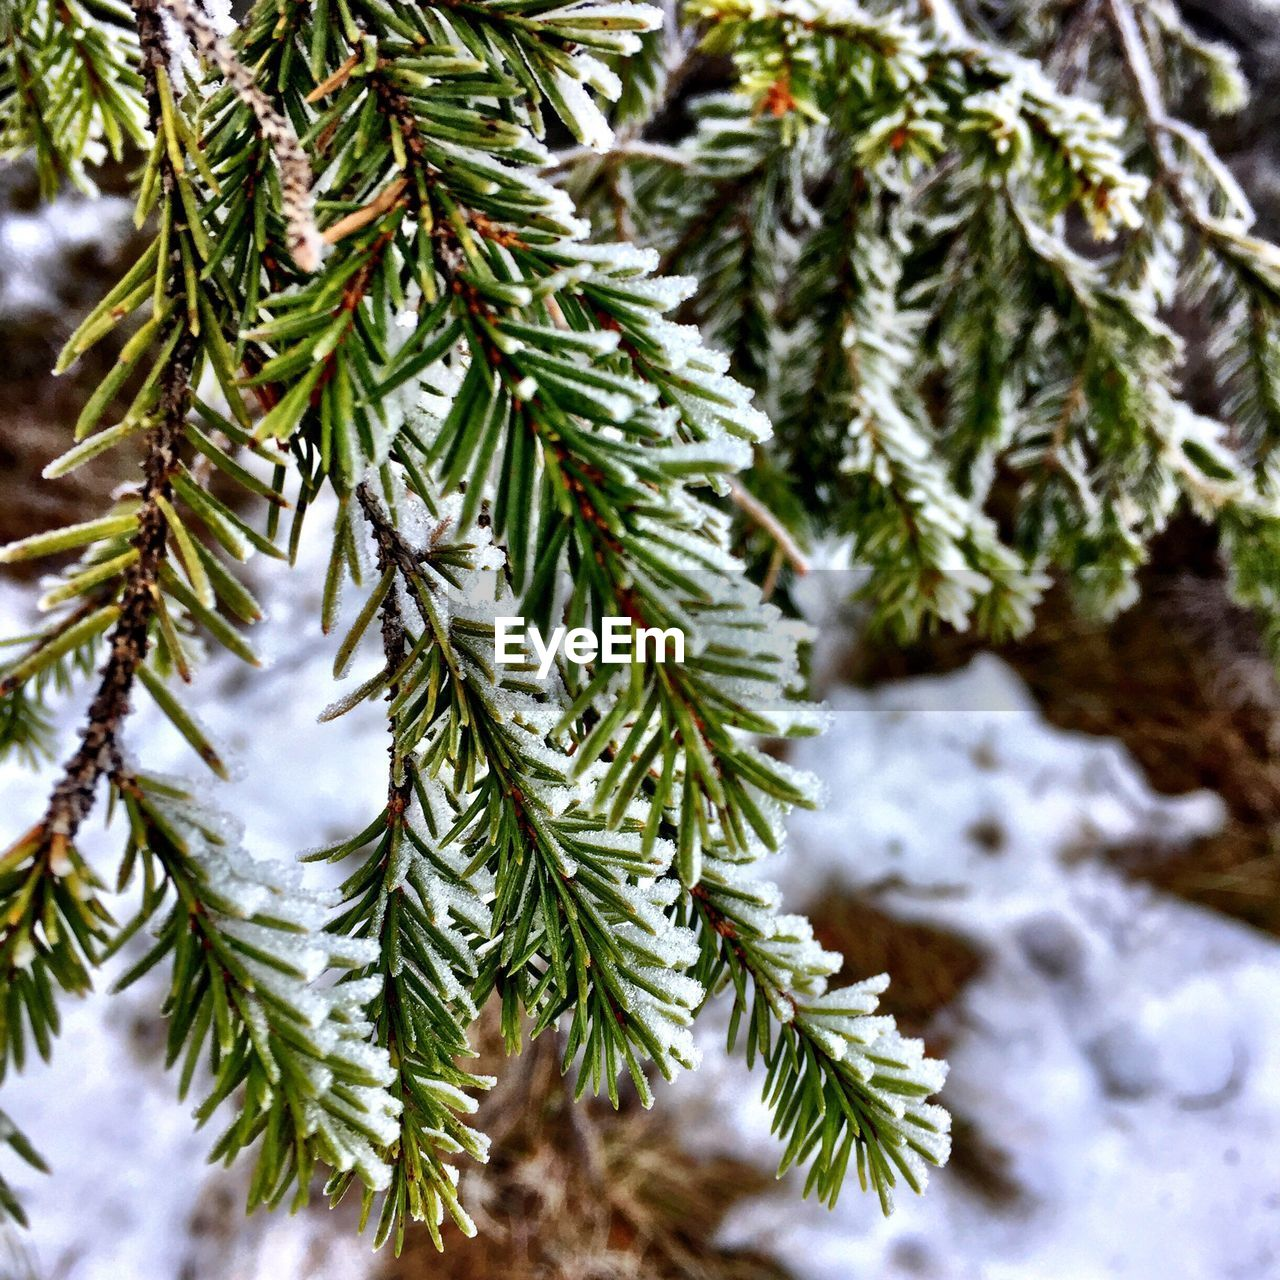 winter, christmas, christmas tree, cold temperature, snow, tree, pine tree, spruce tree, green color, fir tree, nature, no people, focus on foreground, close-up, pinaceae, needle - plant part, celebration, growth, branch, weather, beauty in nature, day, selective focus, christmas decoration, outdoors, needle, freshness